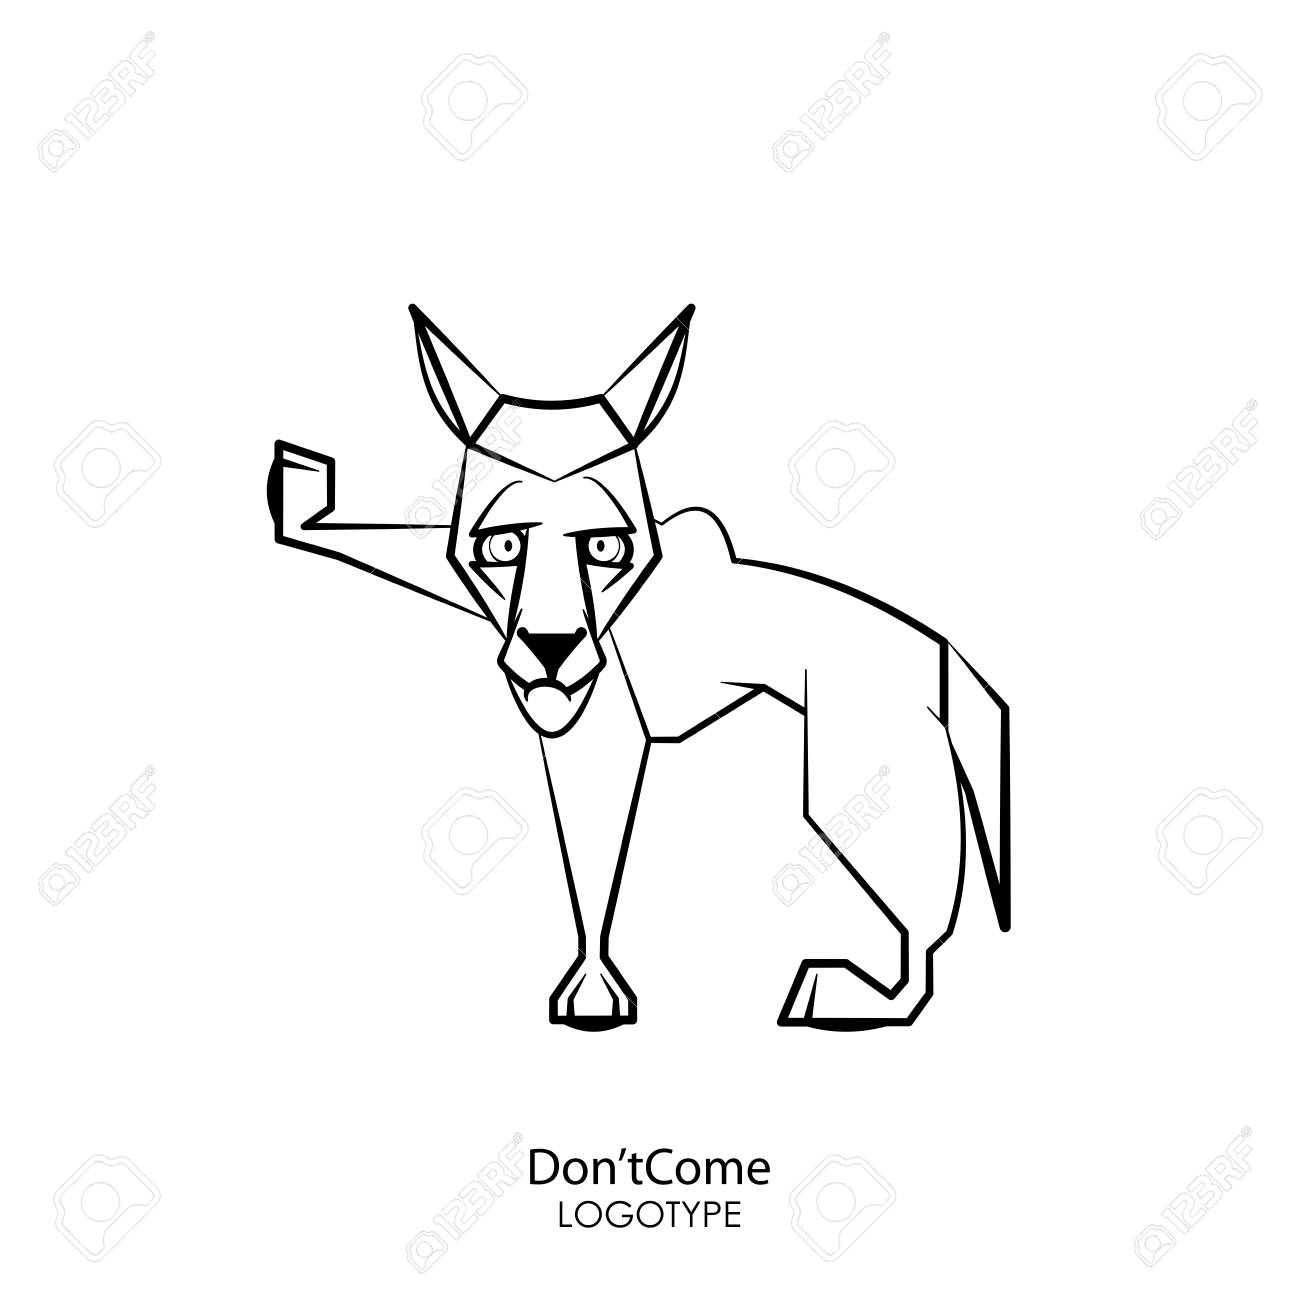 Cartoon character of a forest animal. Funny cool wolf standing posing on a white background. Vector illustration. Do not come, I was offended! Stop! - 124964917